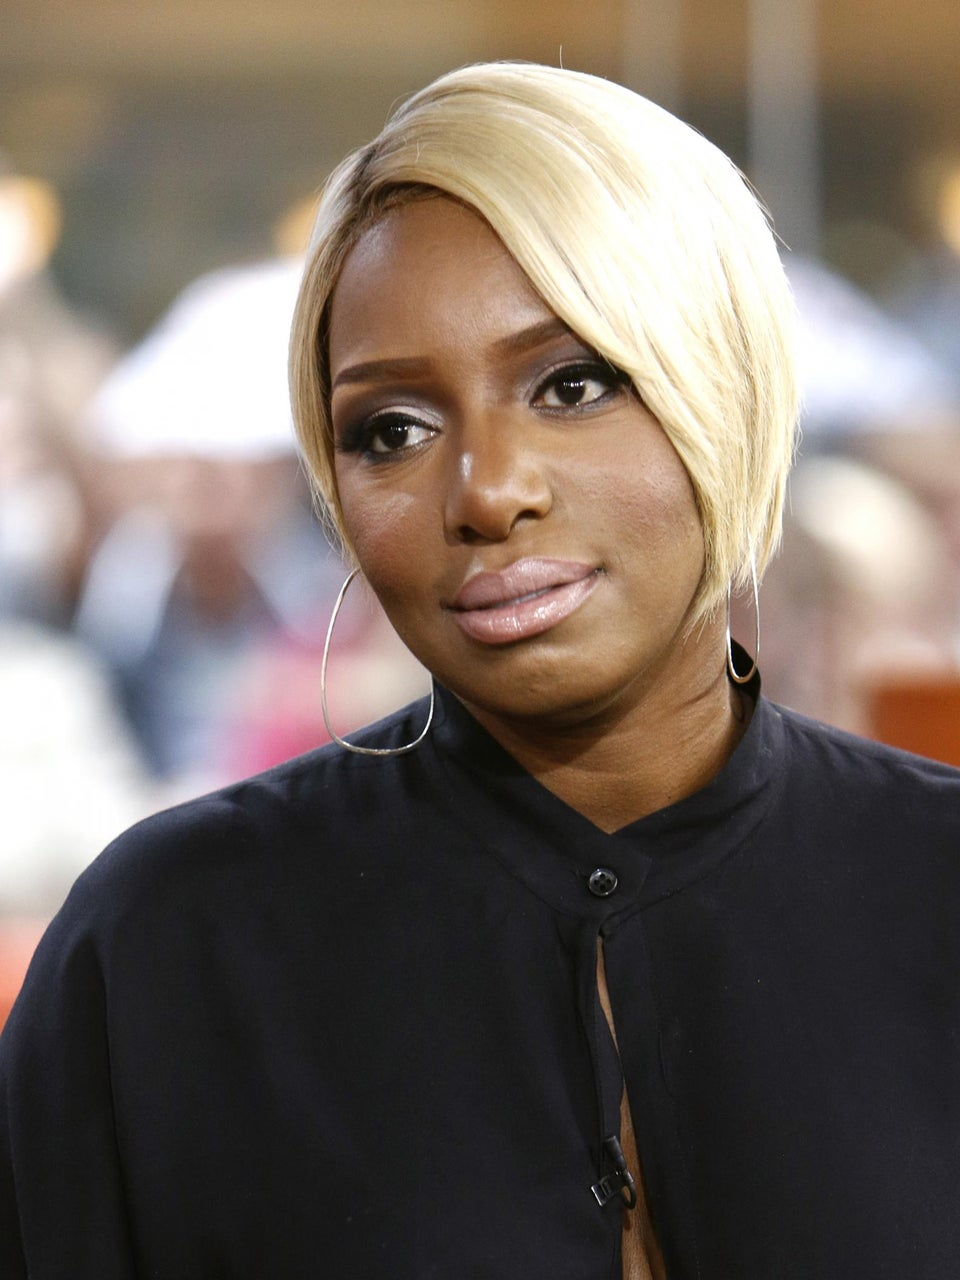 NeNe Leakes Hospitalized, Tweets She's Blessed to Be Alive